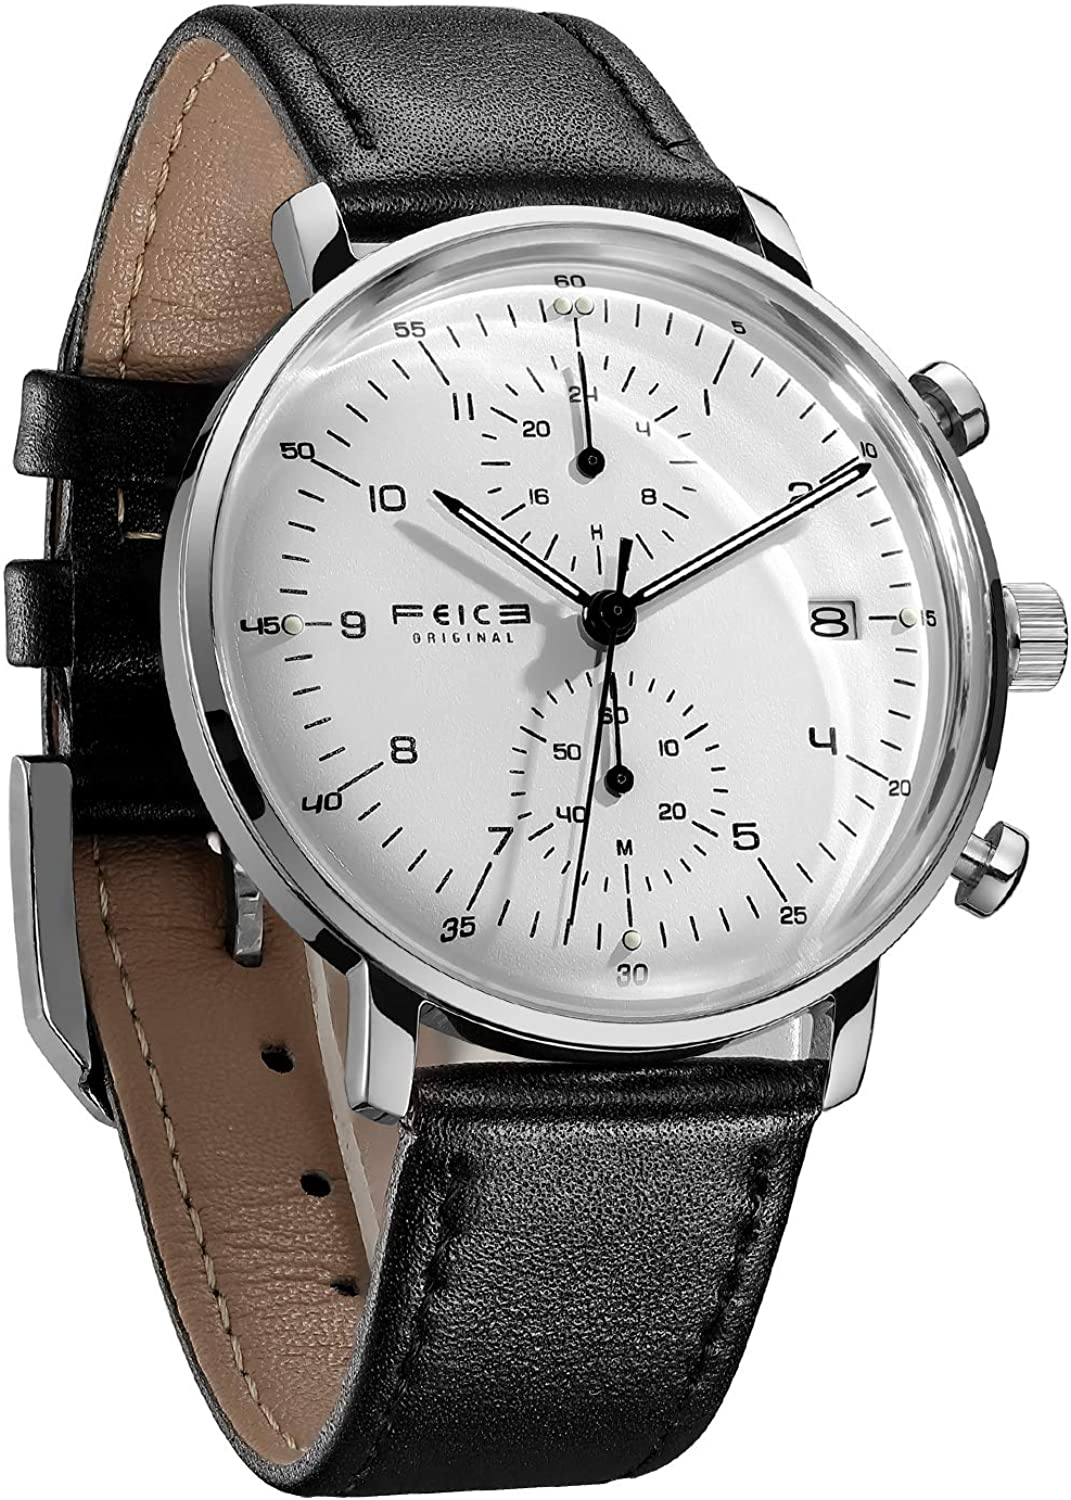 FEICE Men s Watches Ultra Thin Analog Quartz Watch Stainless Steel Luminous Dual Time Casual Watches for Men with Leather Bands Calendar -FS021